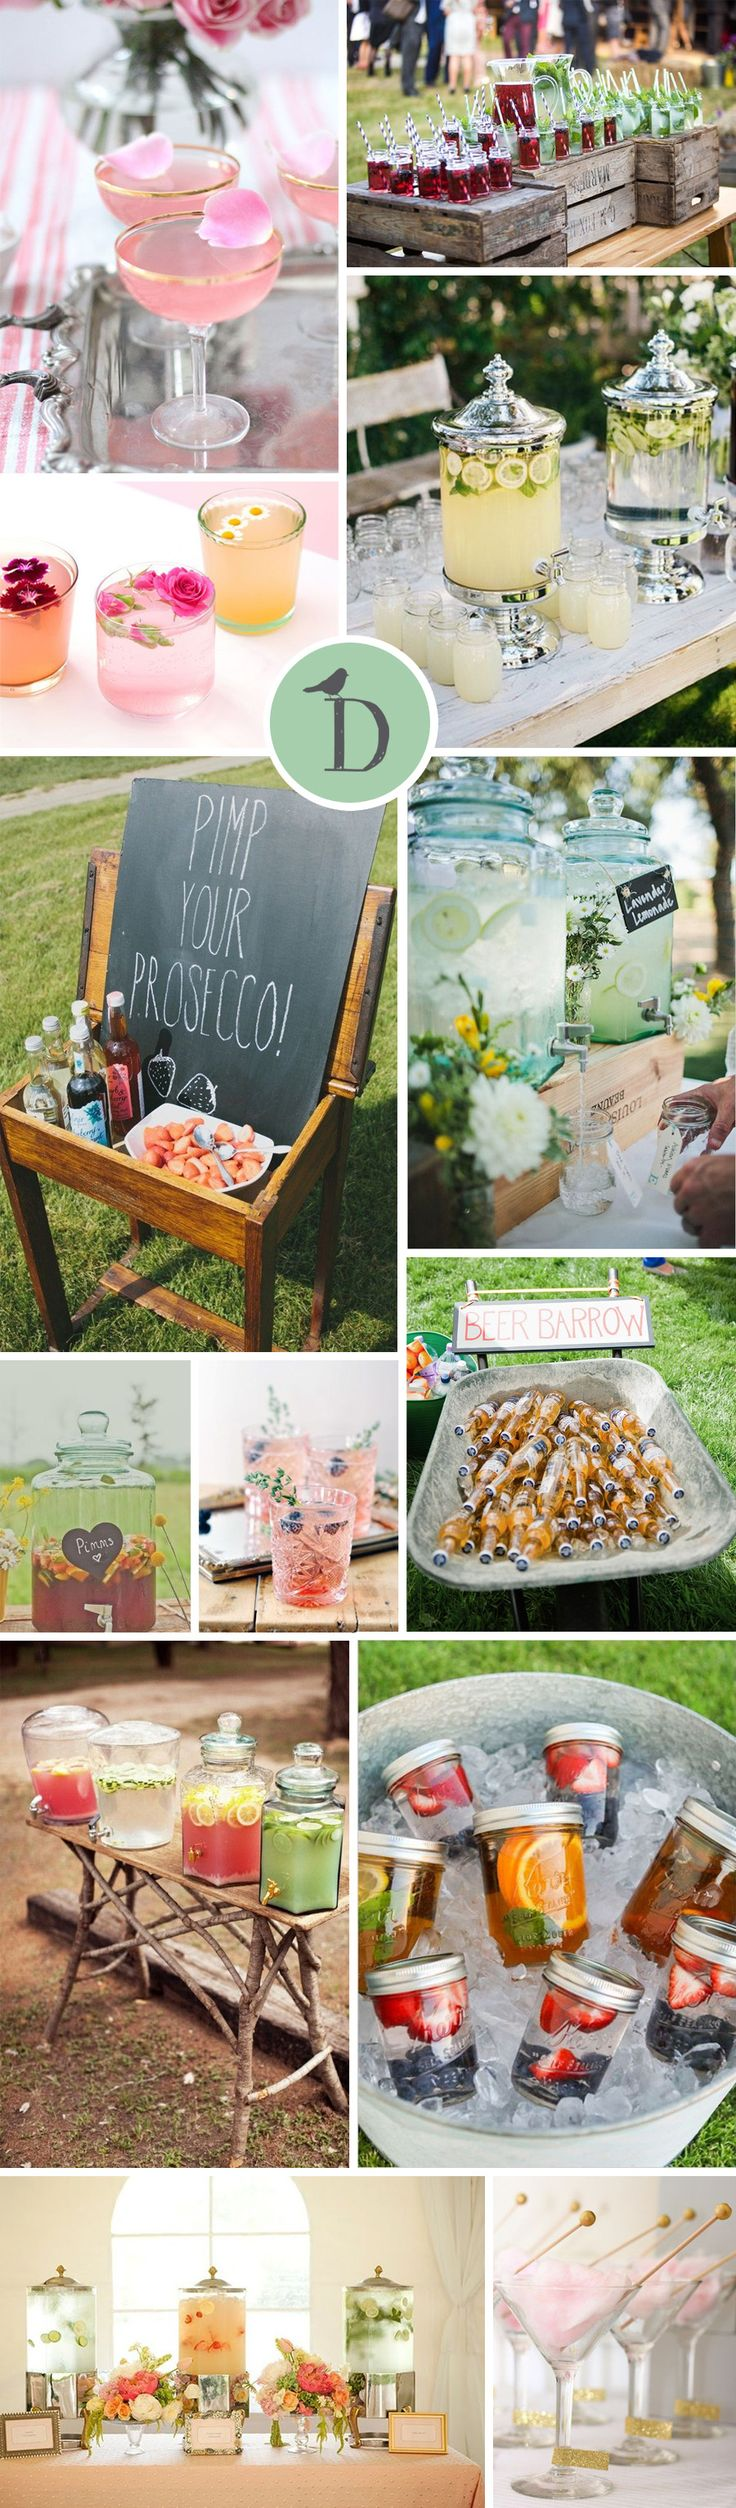 How to serve your wedding drinks can be a bit of a dilemma, especially if you are having a more relaxed or rustic wedding. Cute signs, rustic details, and gorgeous dispensers to the rescue! From memorable cocktails to gorgeous self-serve bars, we're here with some swoon-worthy wedding drinks inspiration!